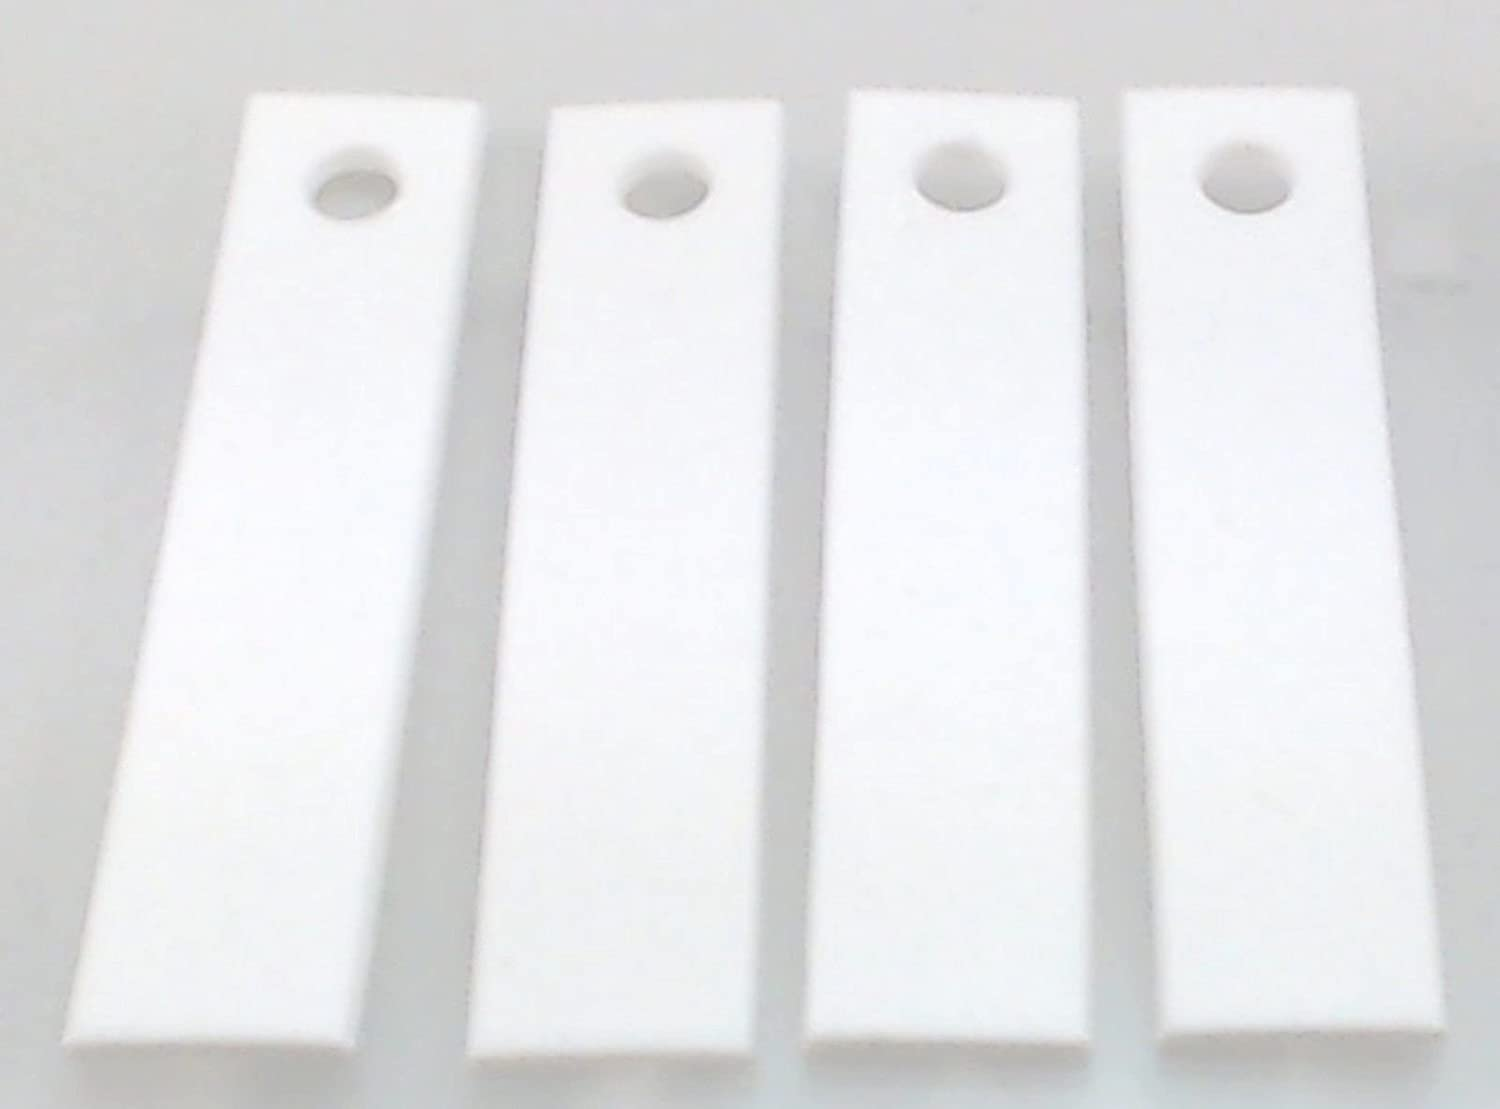 Drum Slide Kit (4-PK) for General Electric, AP5668531, PS6447706, WE1M1067 Seneca River Trading